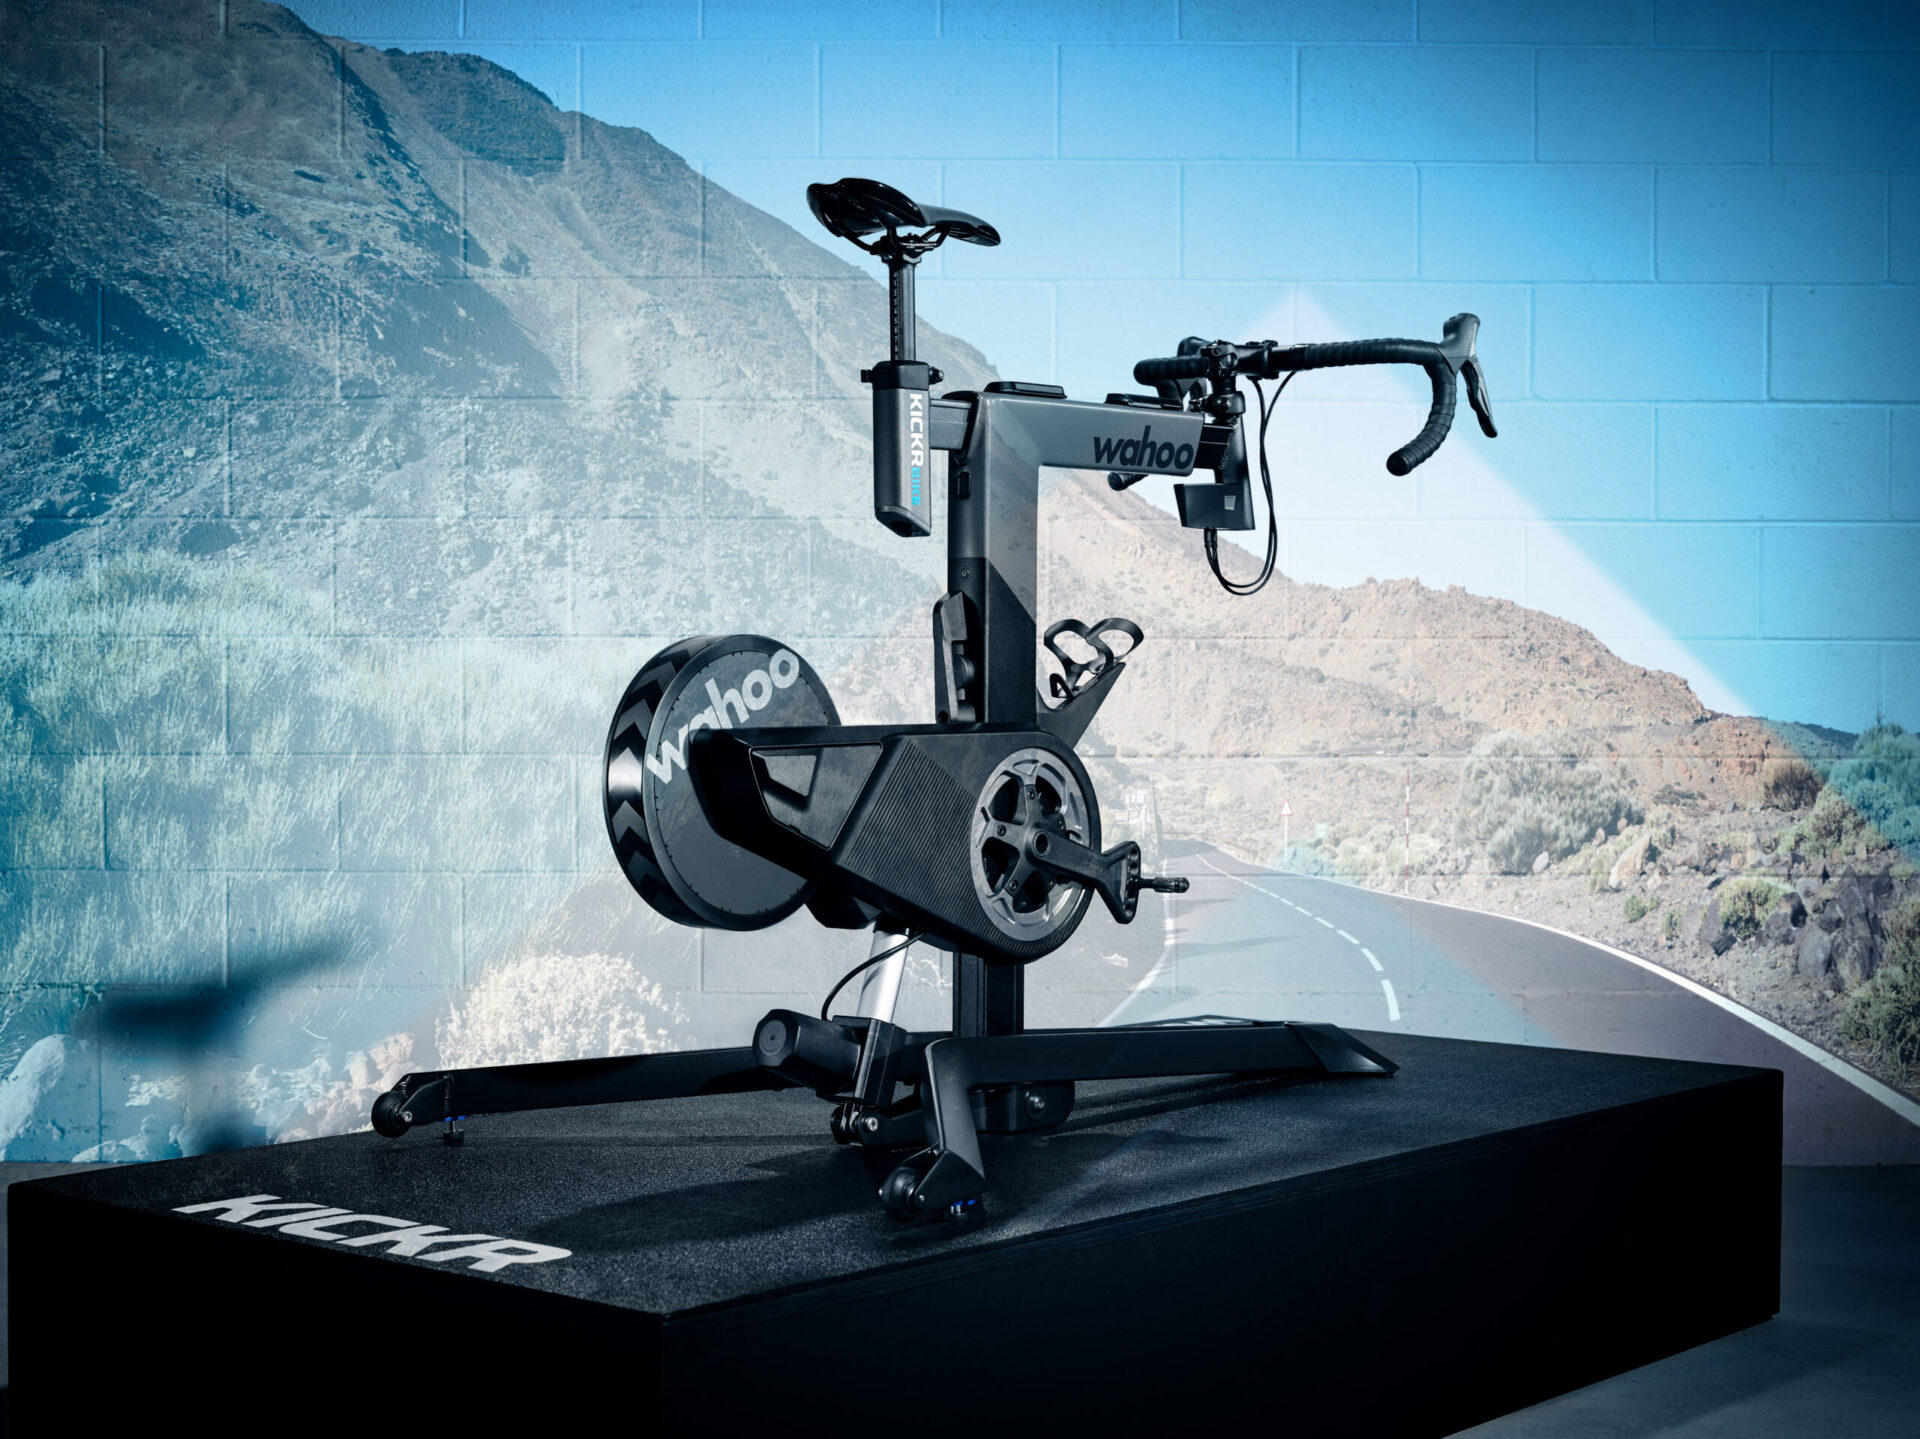 Wahoo KICKR BIKE Now Available for Pre-Order in the UK